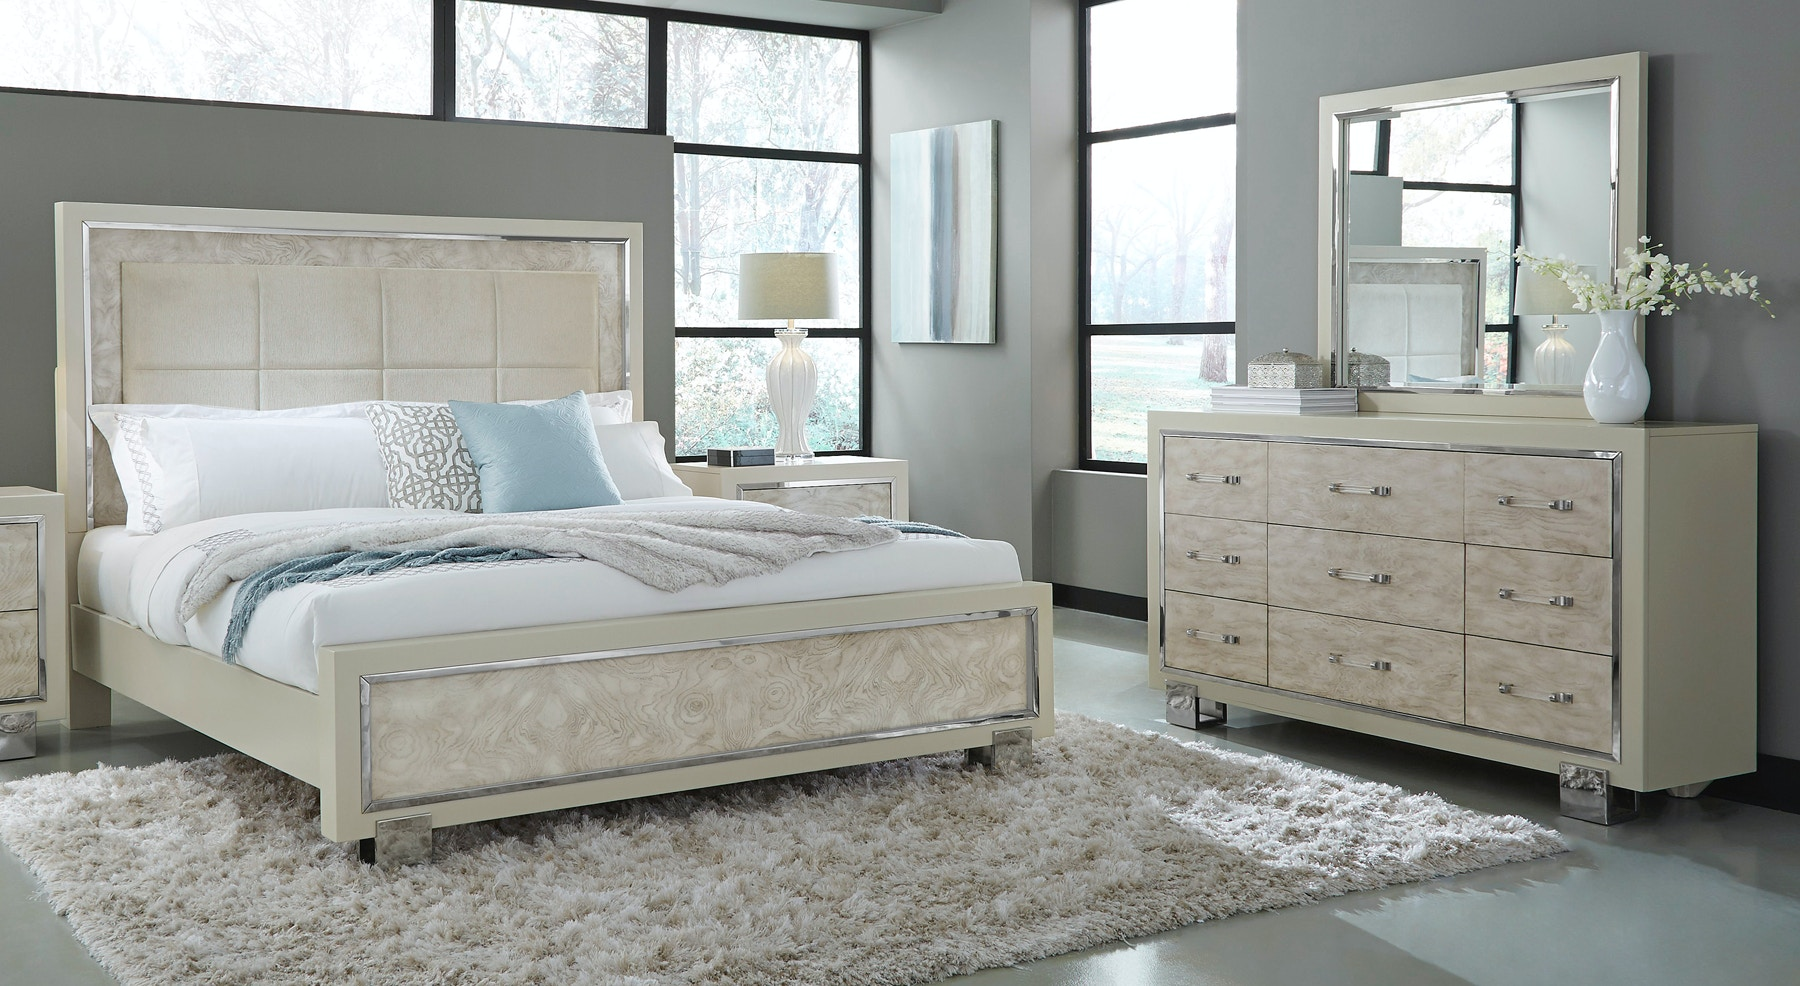 Pulaski Furniture Cydney Bedroom Group Queen 330106